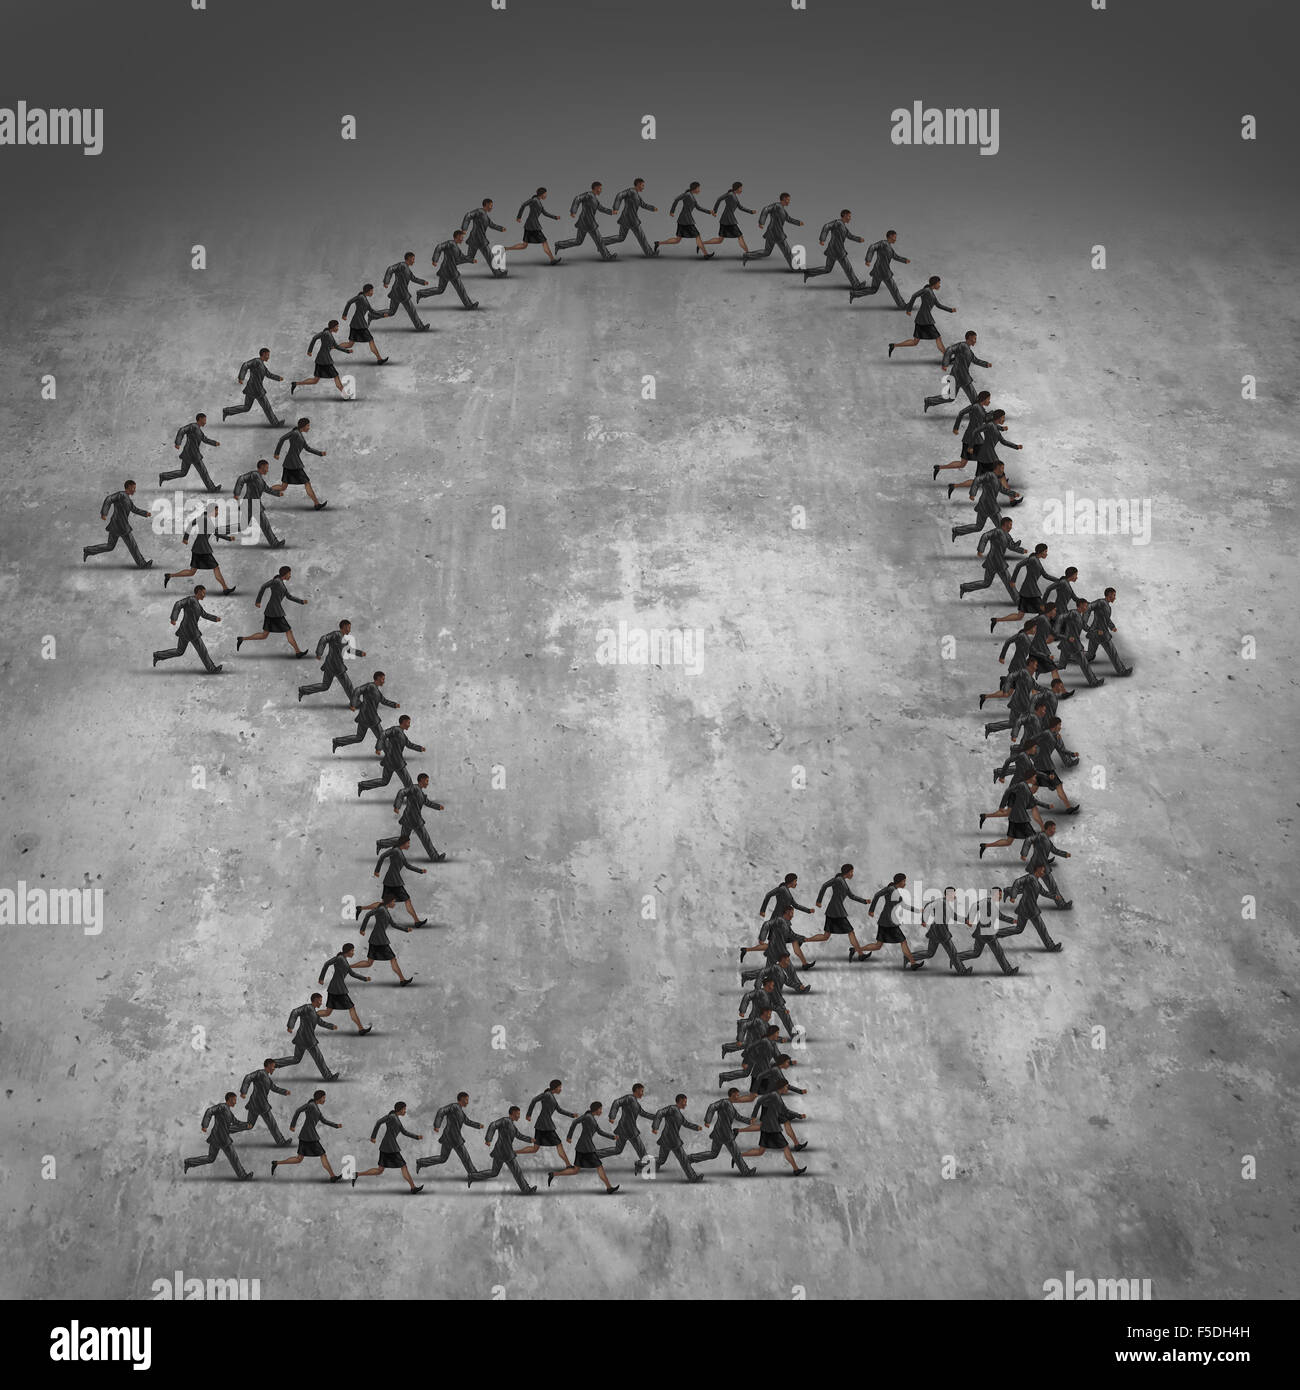 People organization concept as a group of running men and women in a joint effort working together shaped as a human - Stock Image